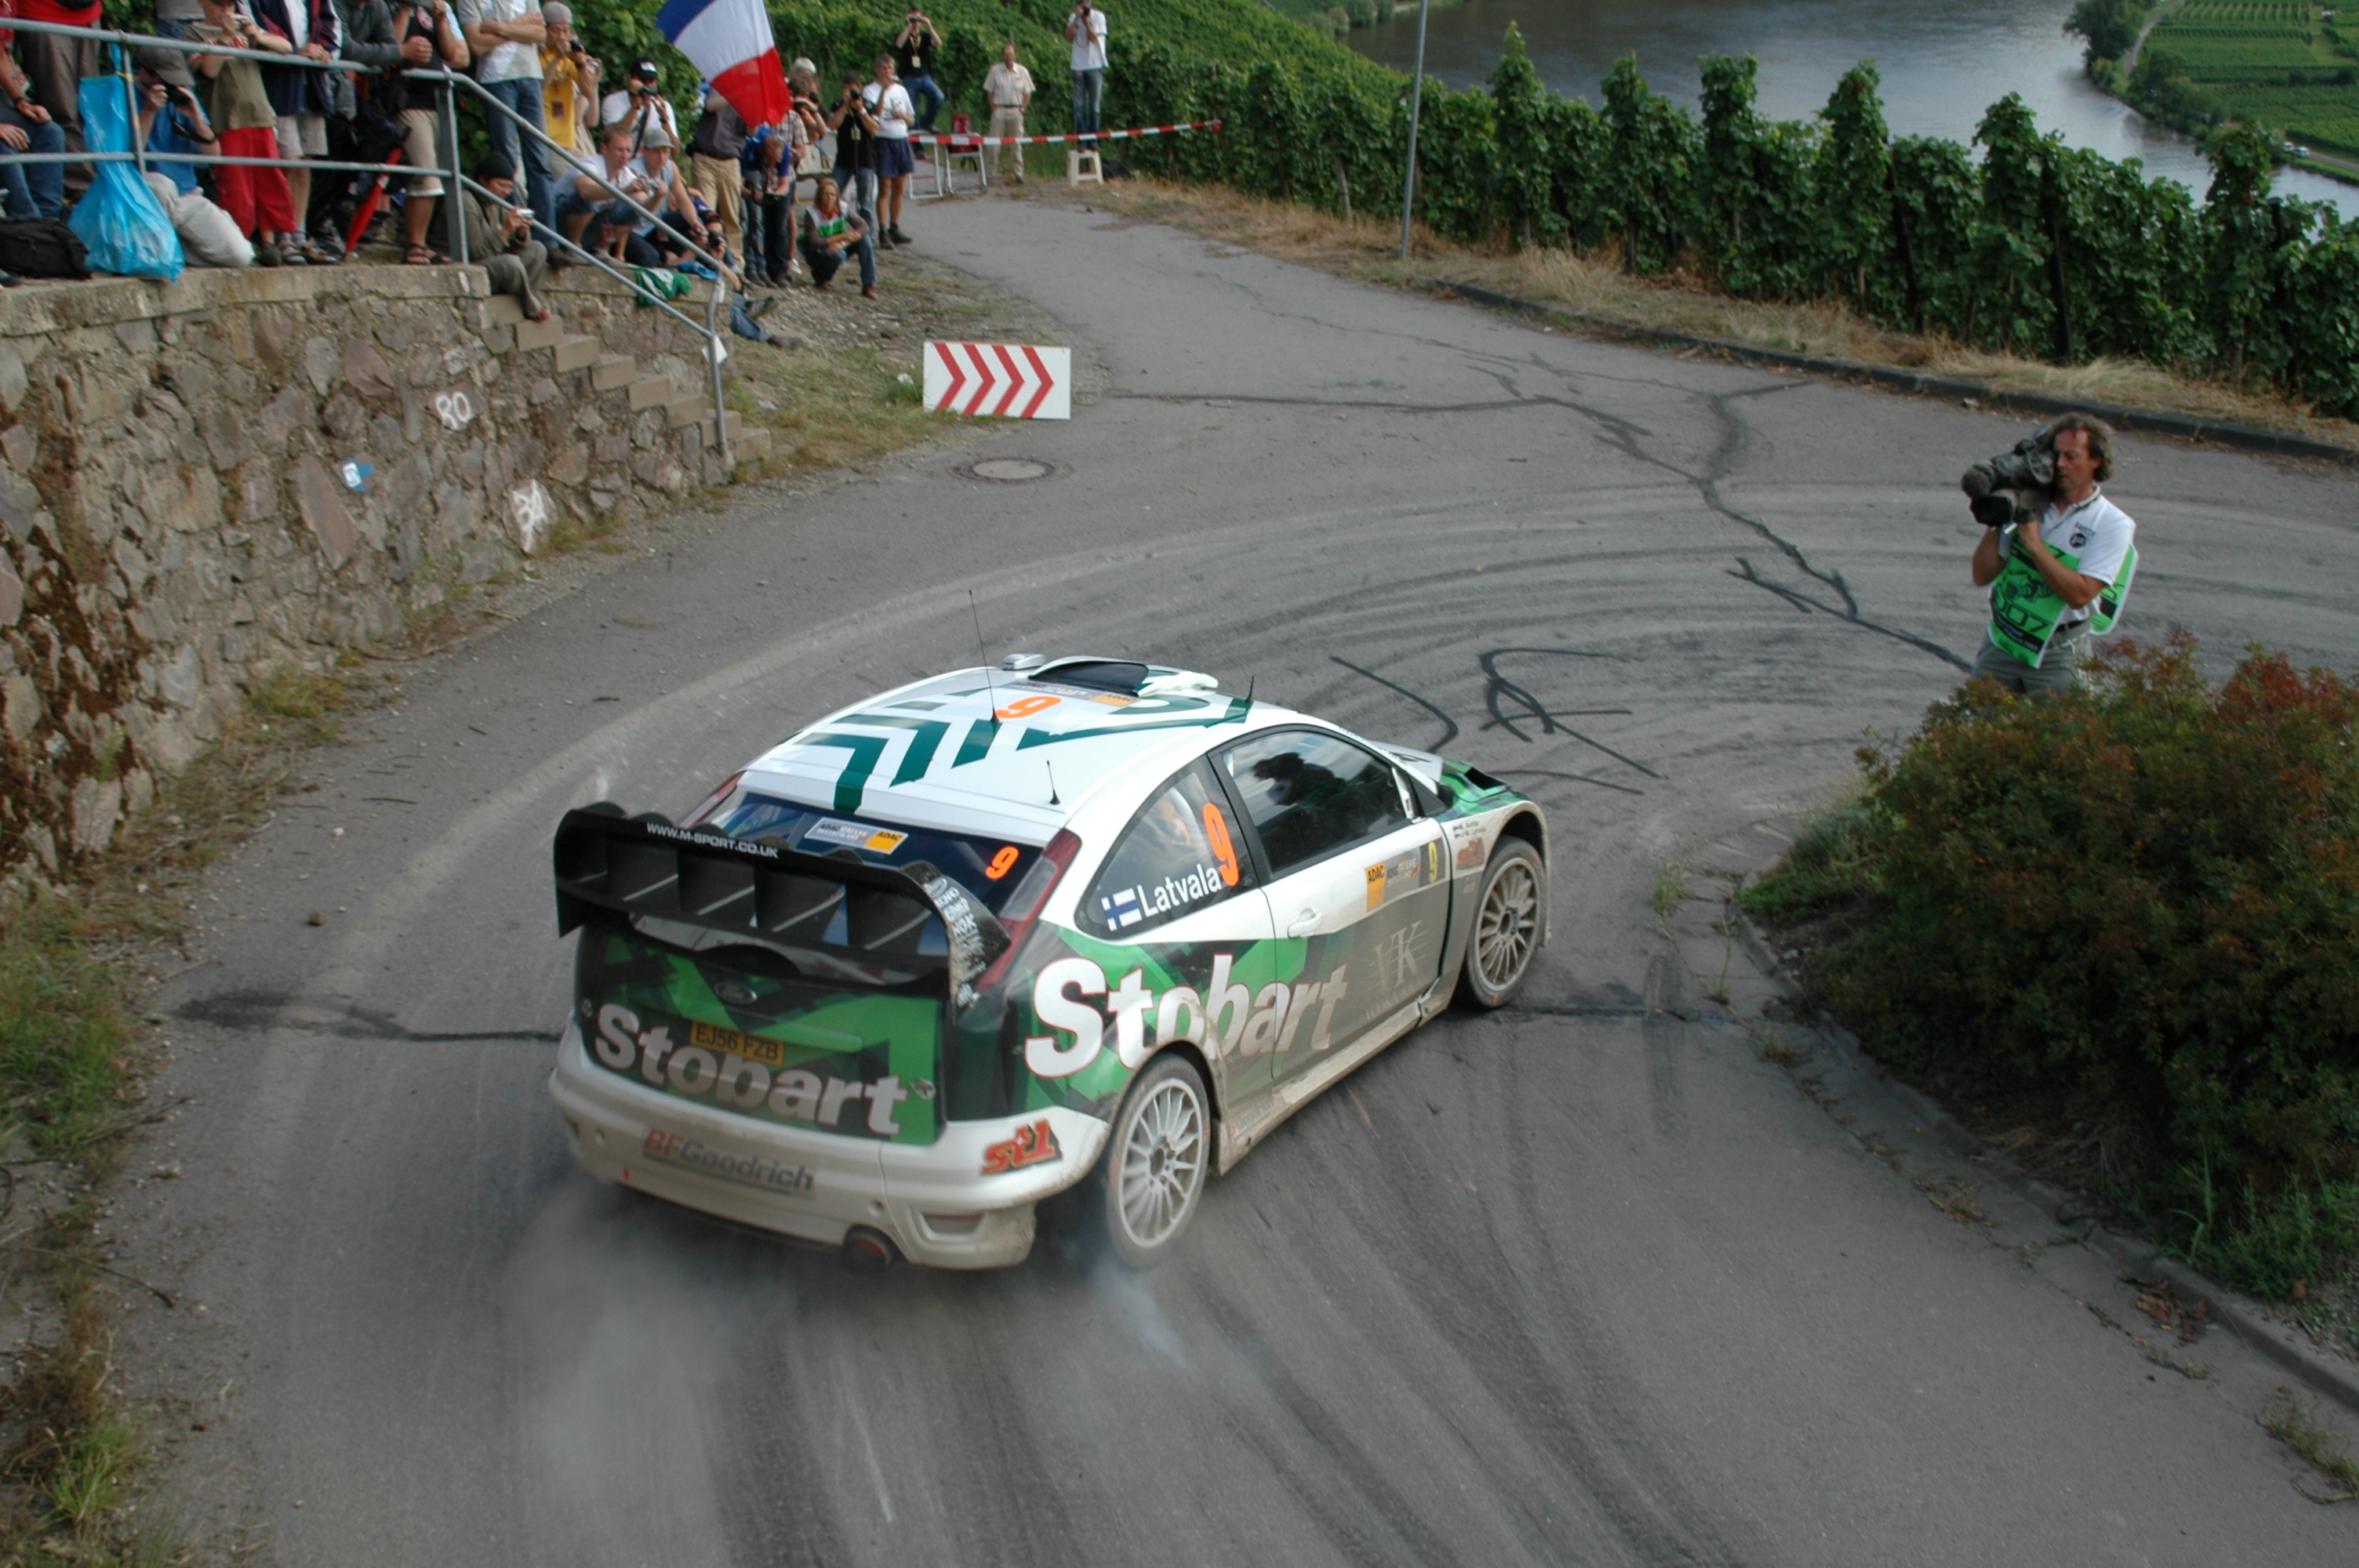 germany Ford rally drifting HD Wallpaper